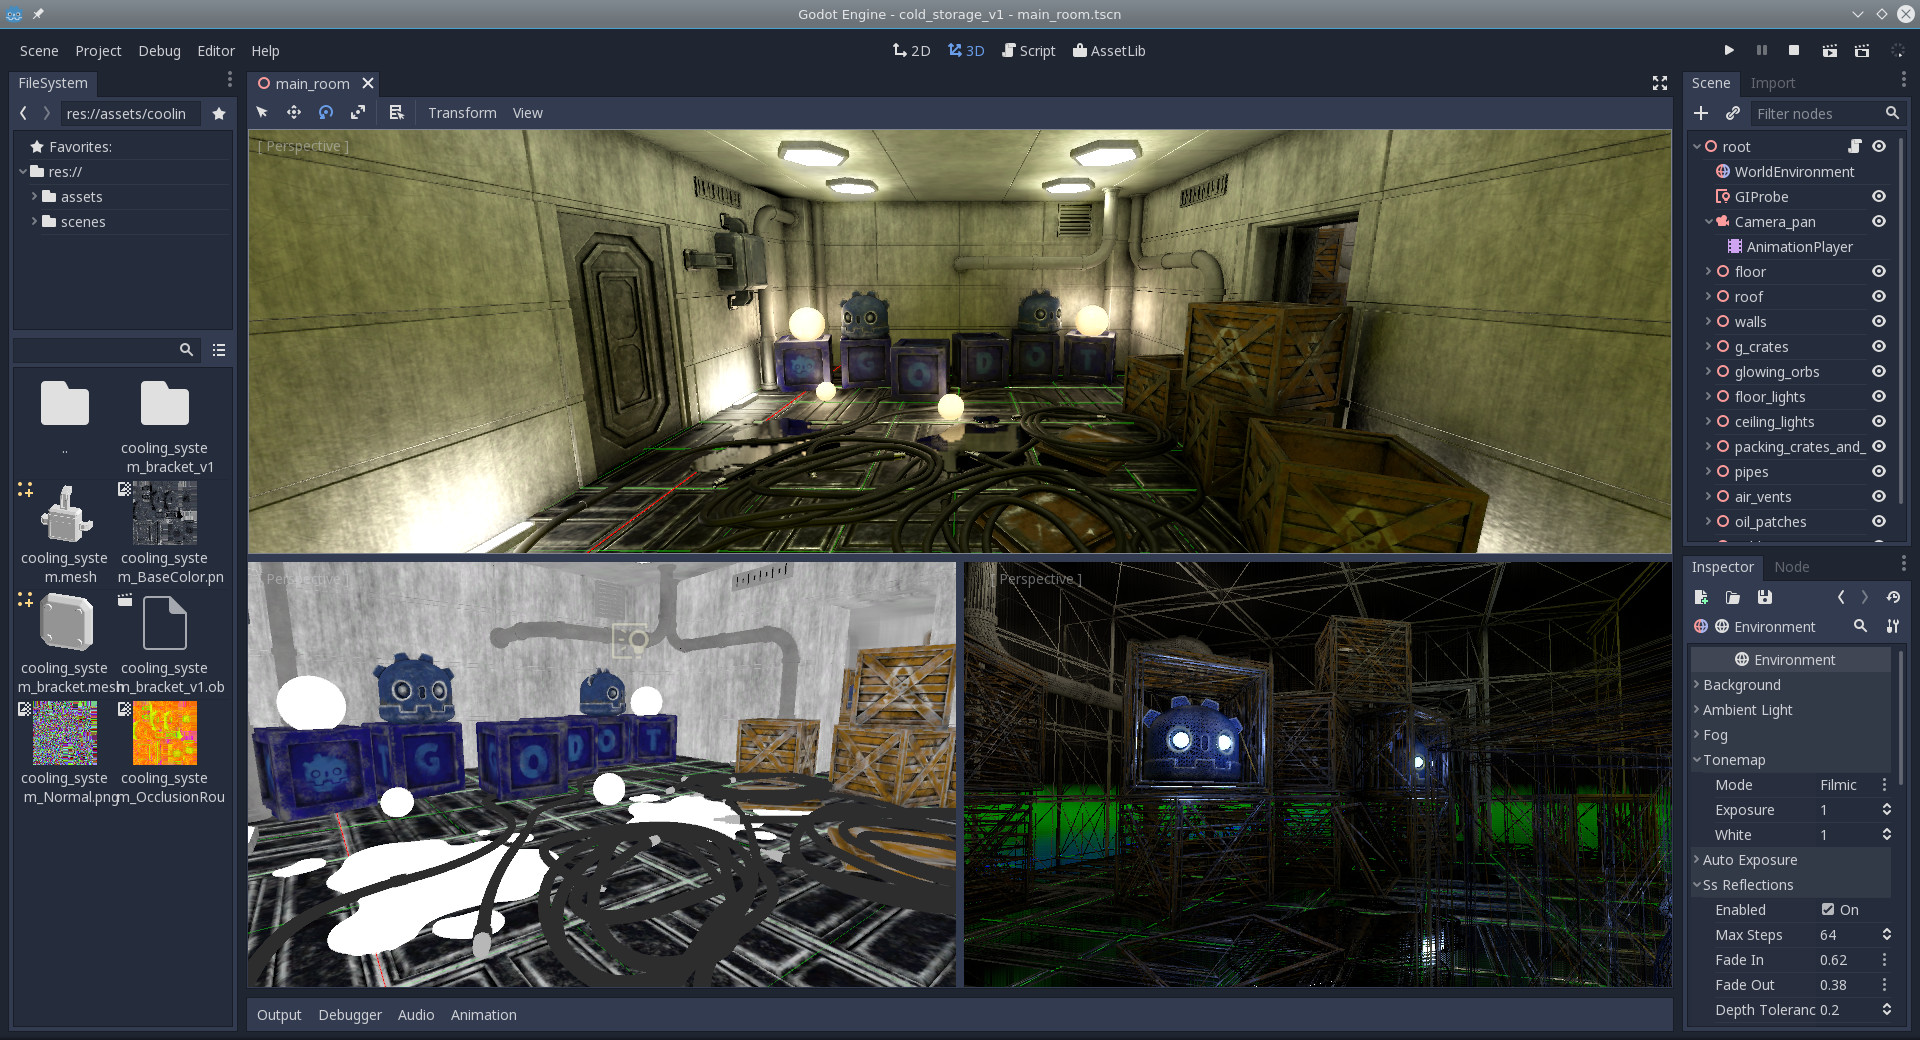 Godot 3.1.2 Stable